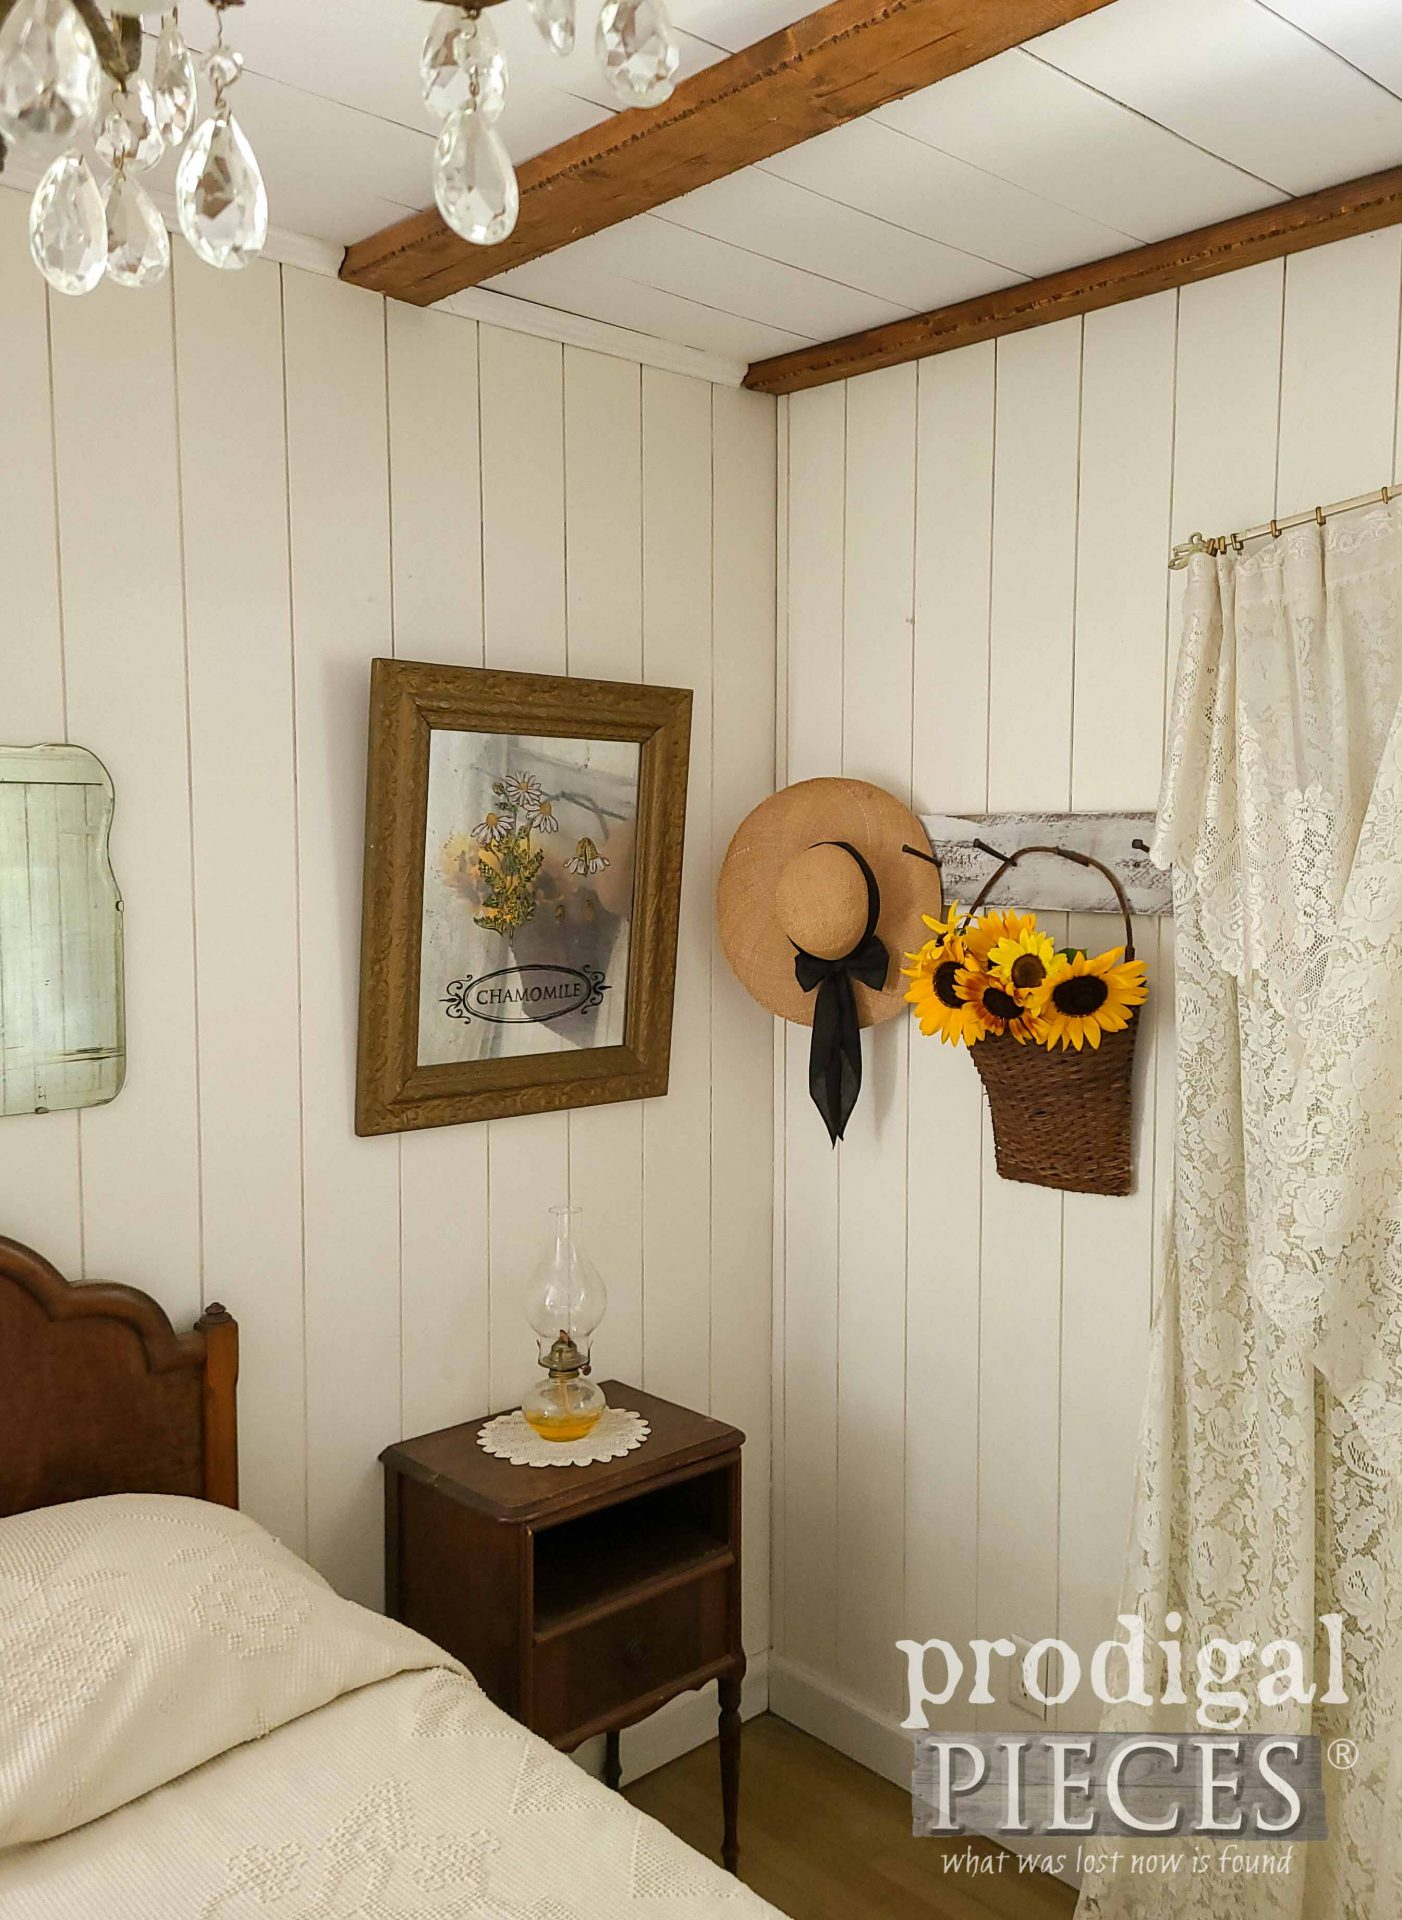 Farmhouse Bedroom Corner with DIY Decor by Larissa of Prodigal Pieces | prodigalpieces.com #prodigalpieces #diy #home #homedecor #bedroom #farmhouse